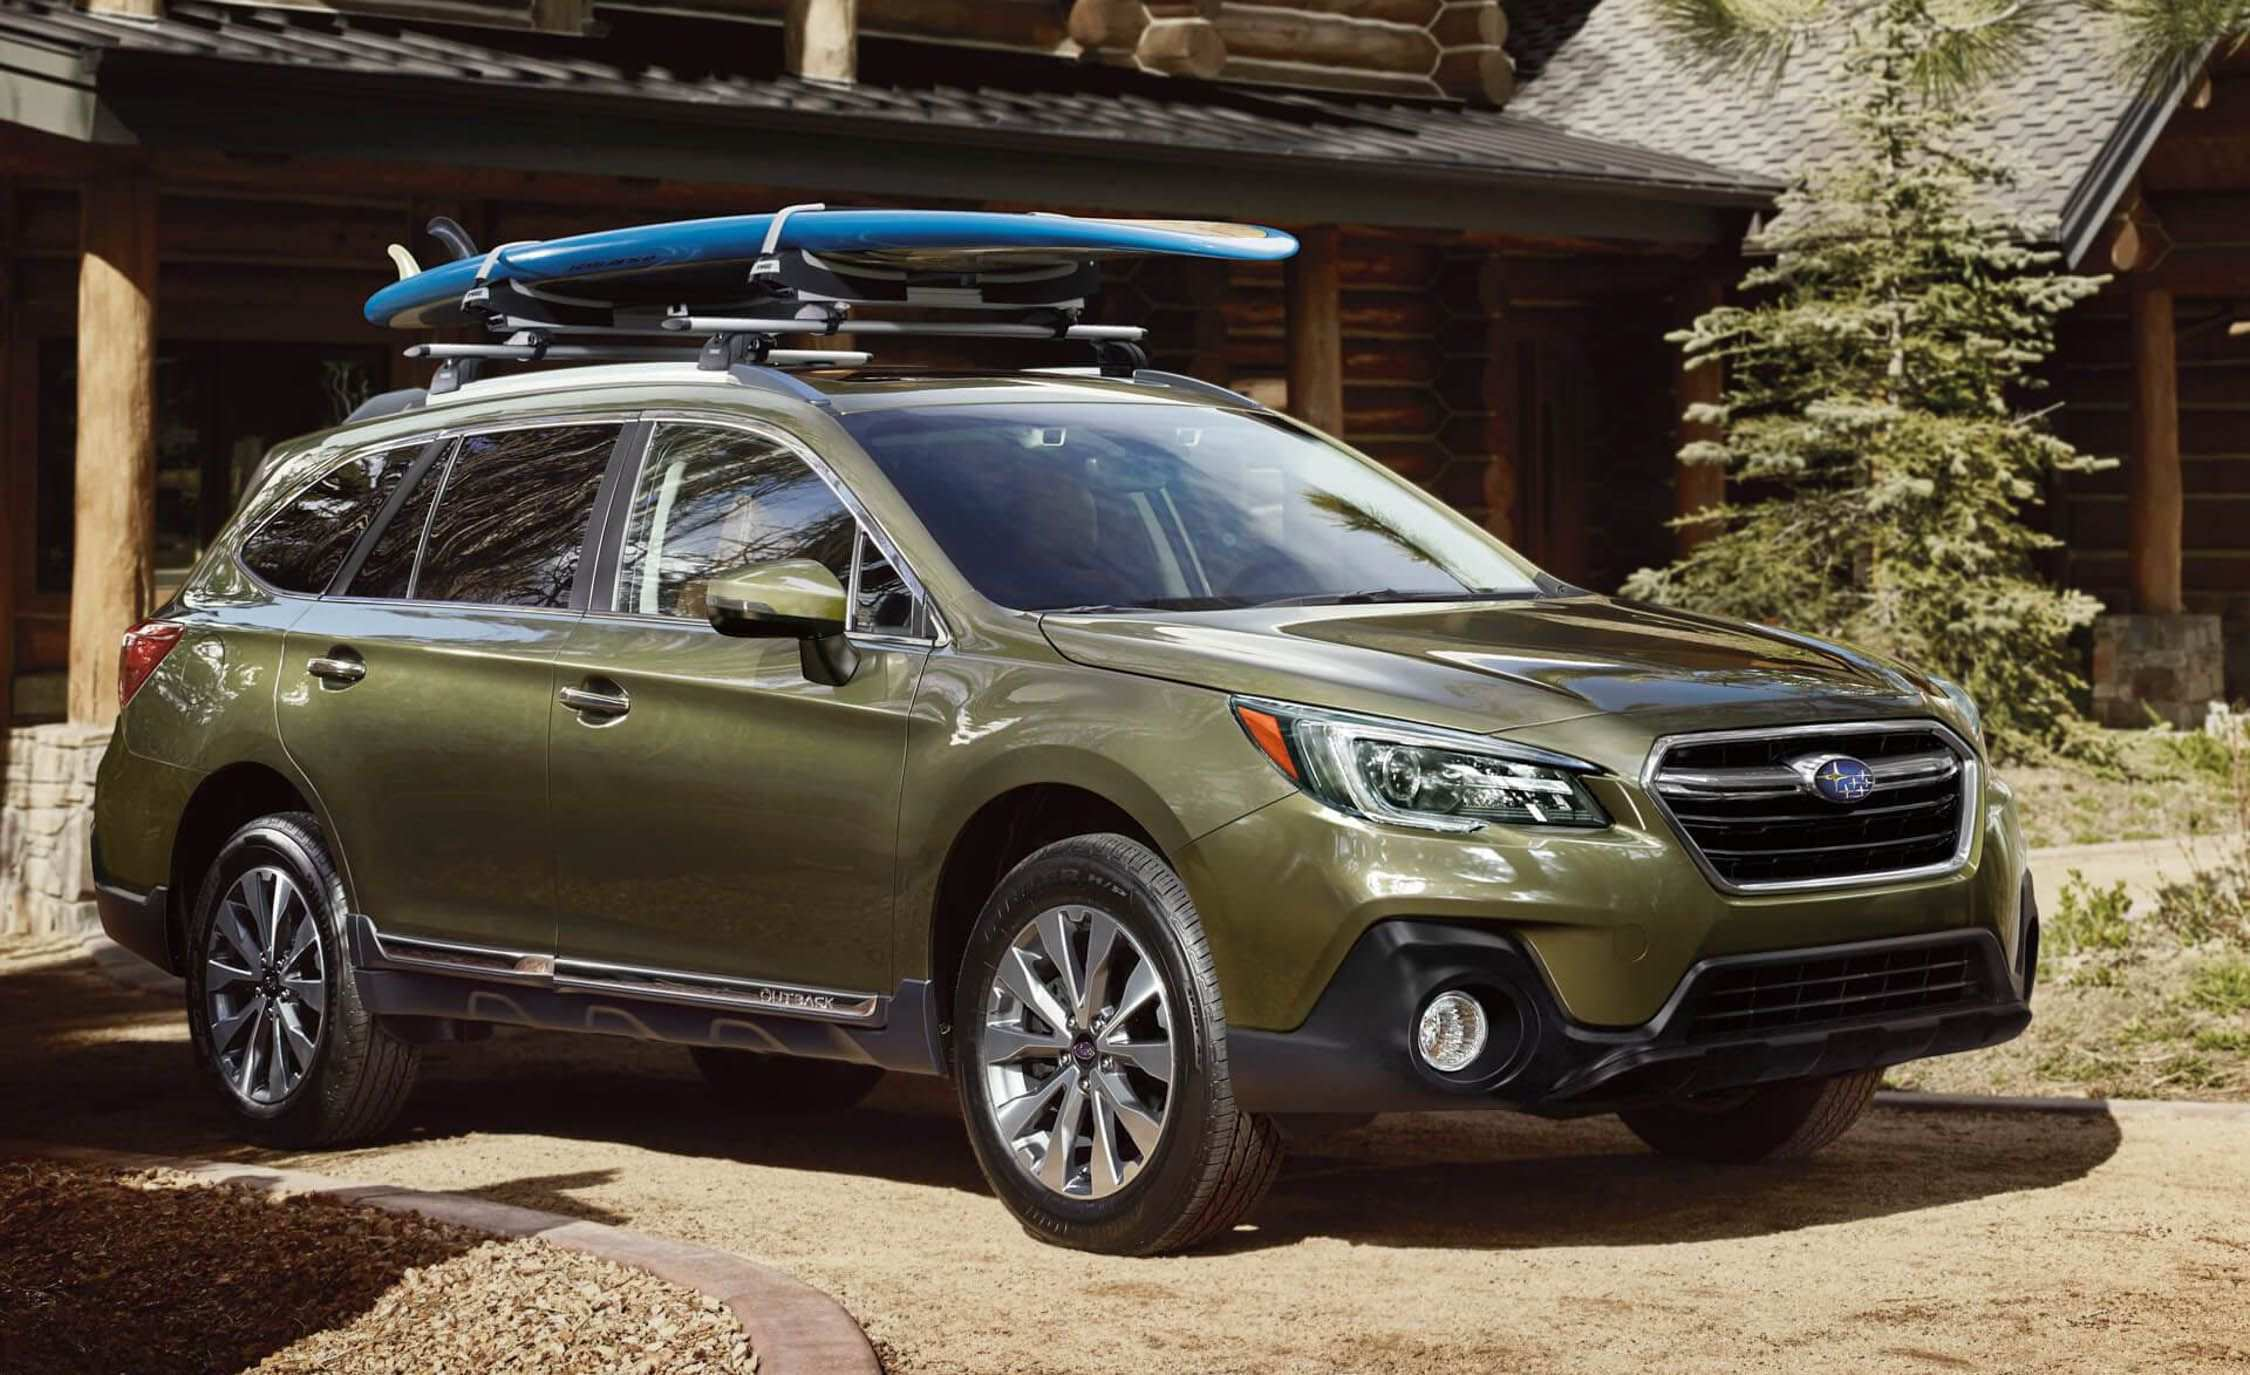 28 All New Subaru Outback 2020 Release Date Rumors